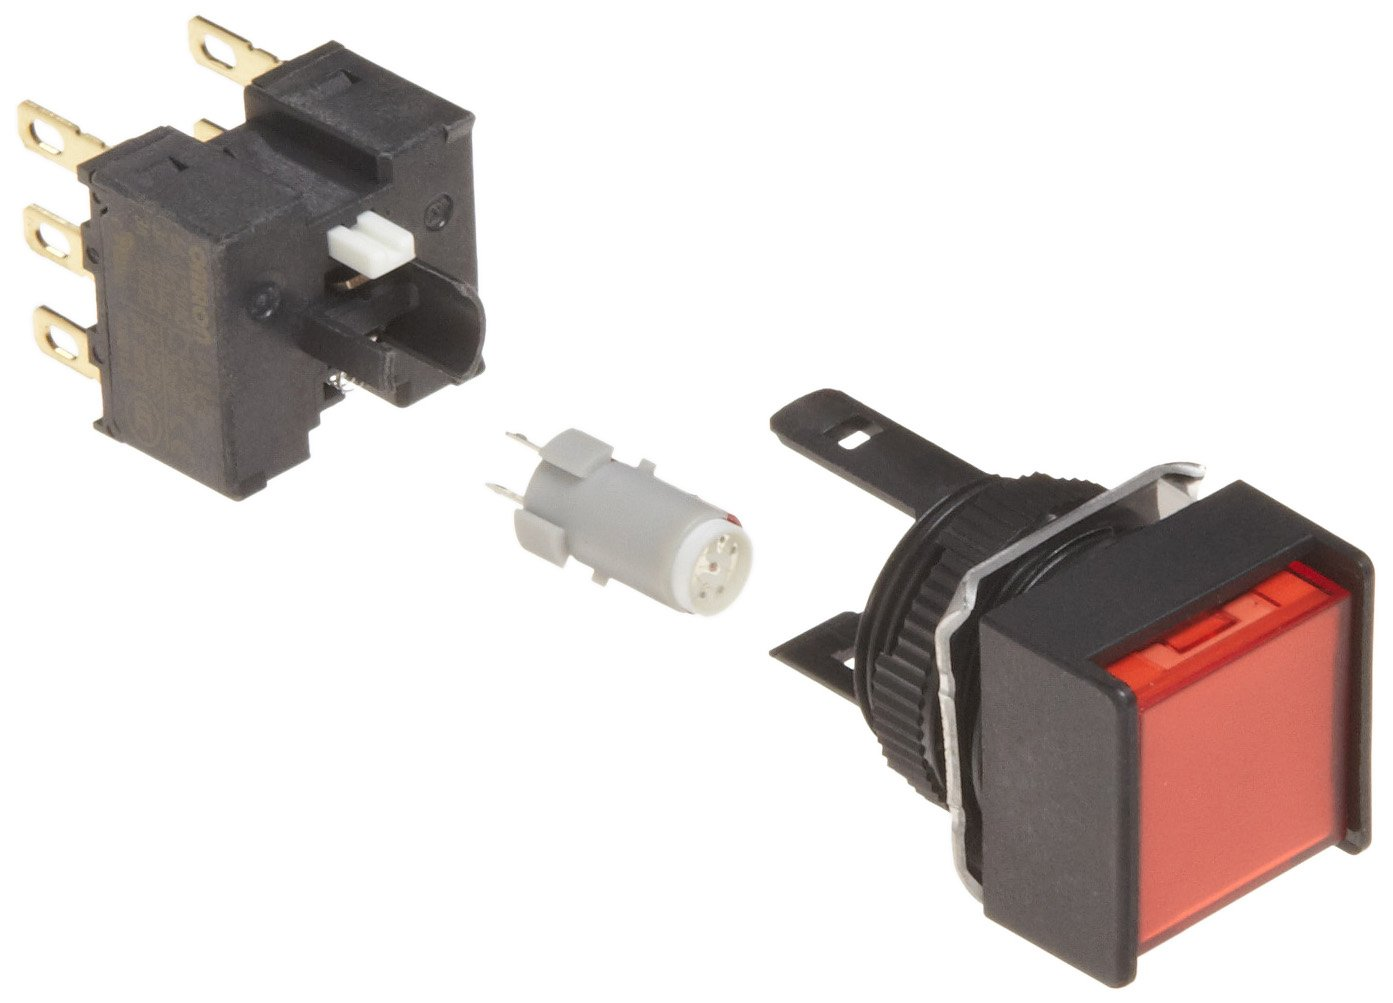 Omron A165L-ARM-24D-2 Two Way Guard Type Pushbutton and Switch, Solder Terminal, IP65 Oil-Resistant, 16mm Mounting Aperture, LED Lighted, Momentary Operation, Square, Red, 24 VDC Rated Voltage, Double Pole Double Throw Contacts